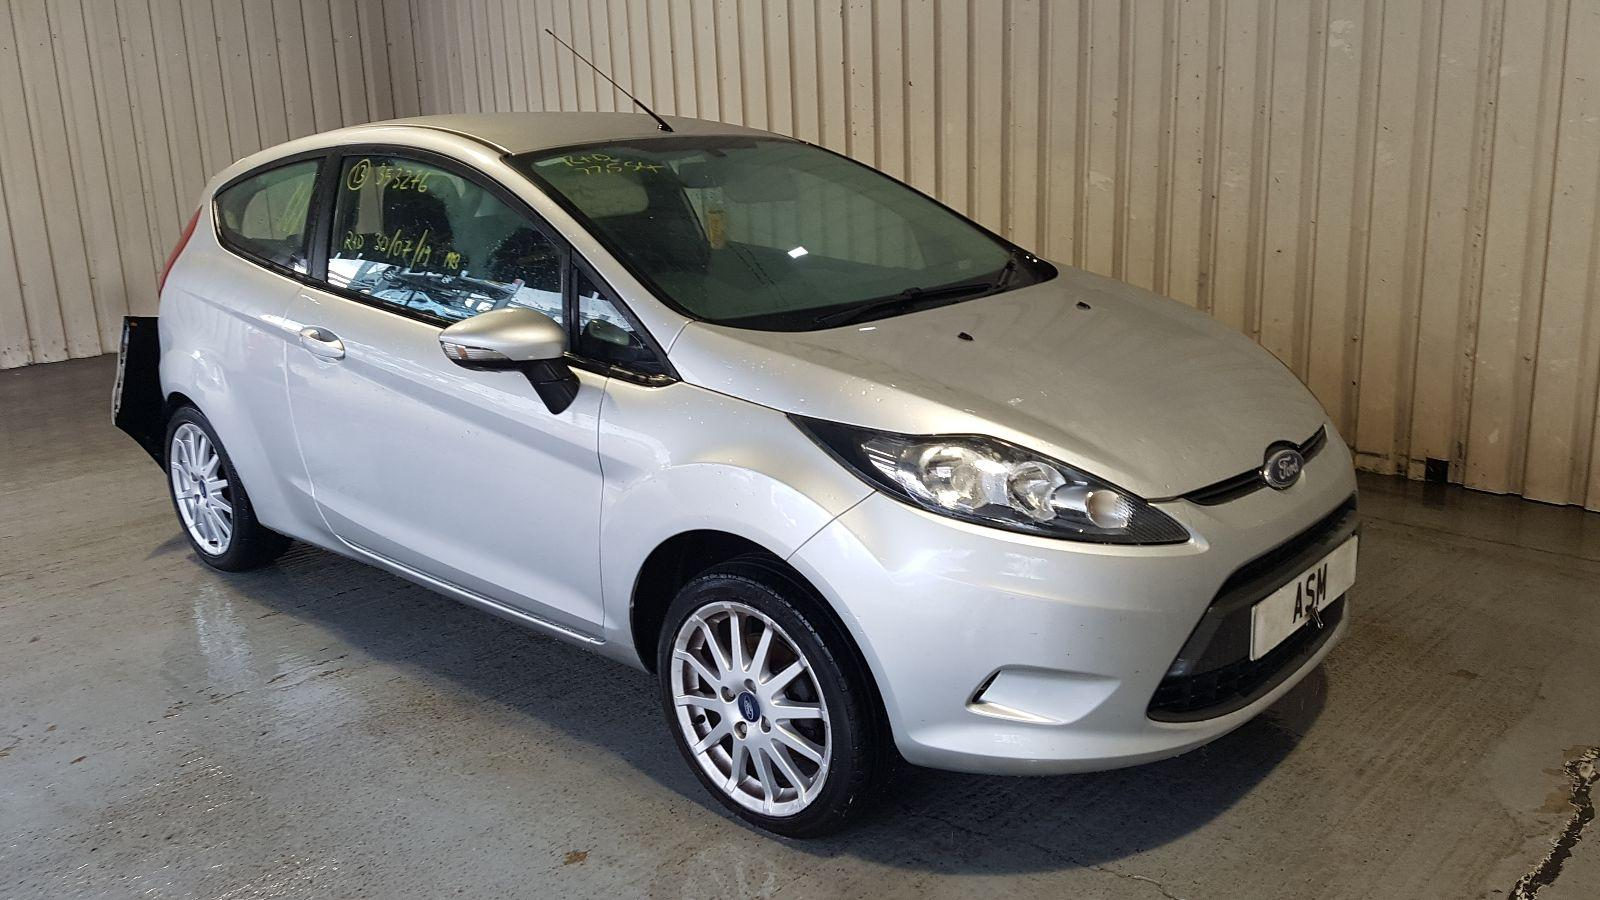 Image for a 2011 Ford Fiesta 1.2 Petrol  Engine